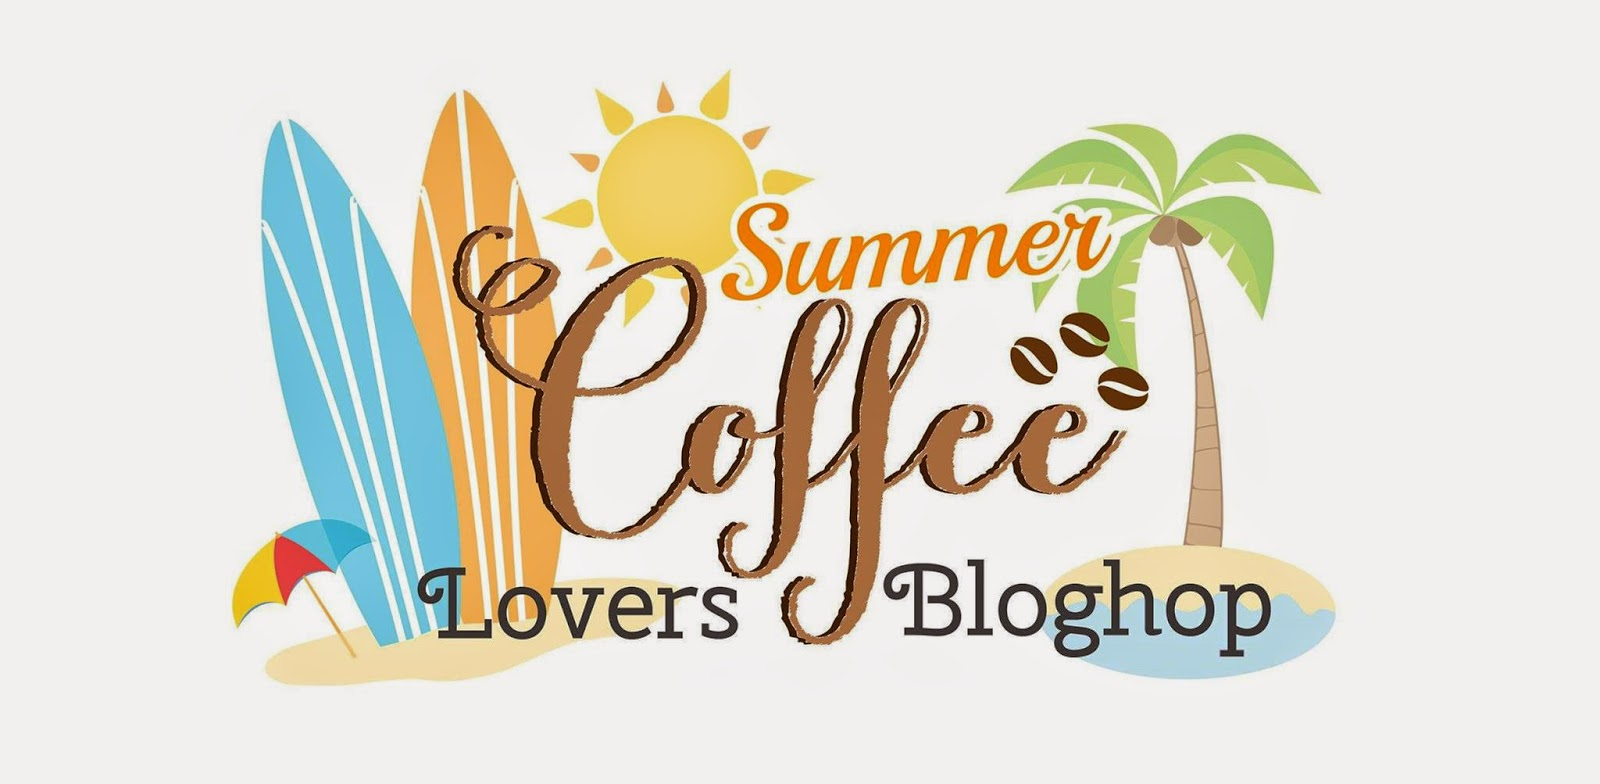 Summer-Coffee-Lovers-Blog-Hop.jpg